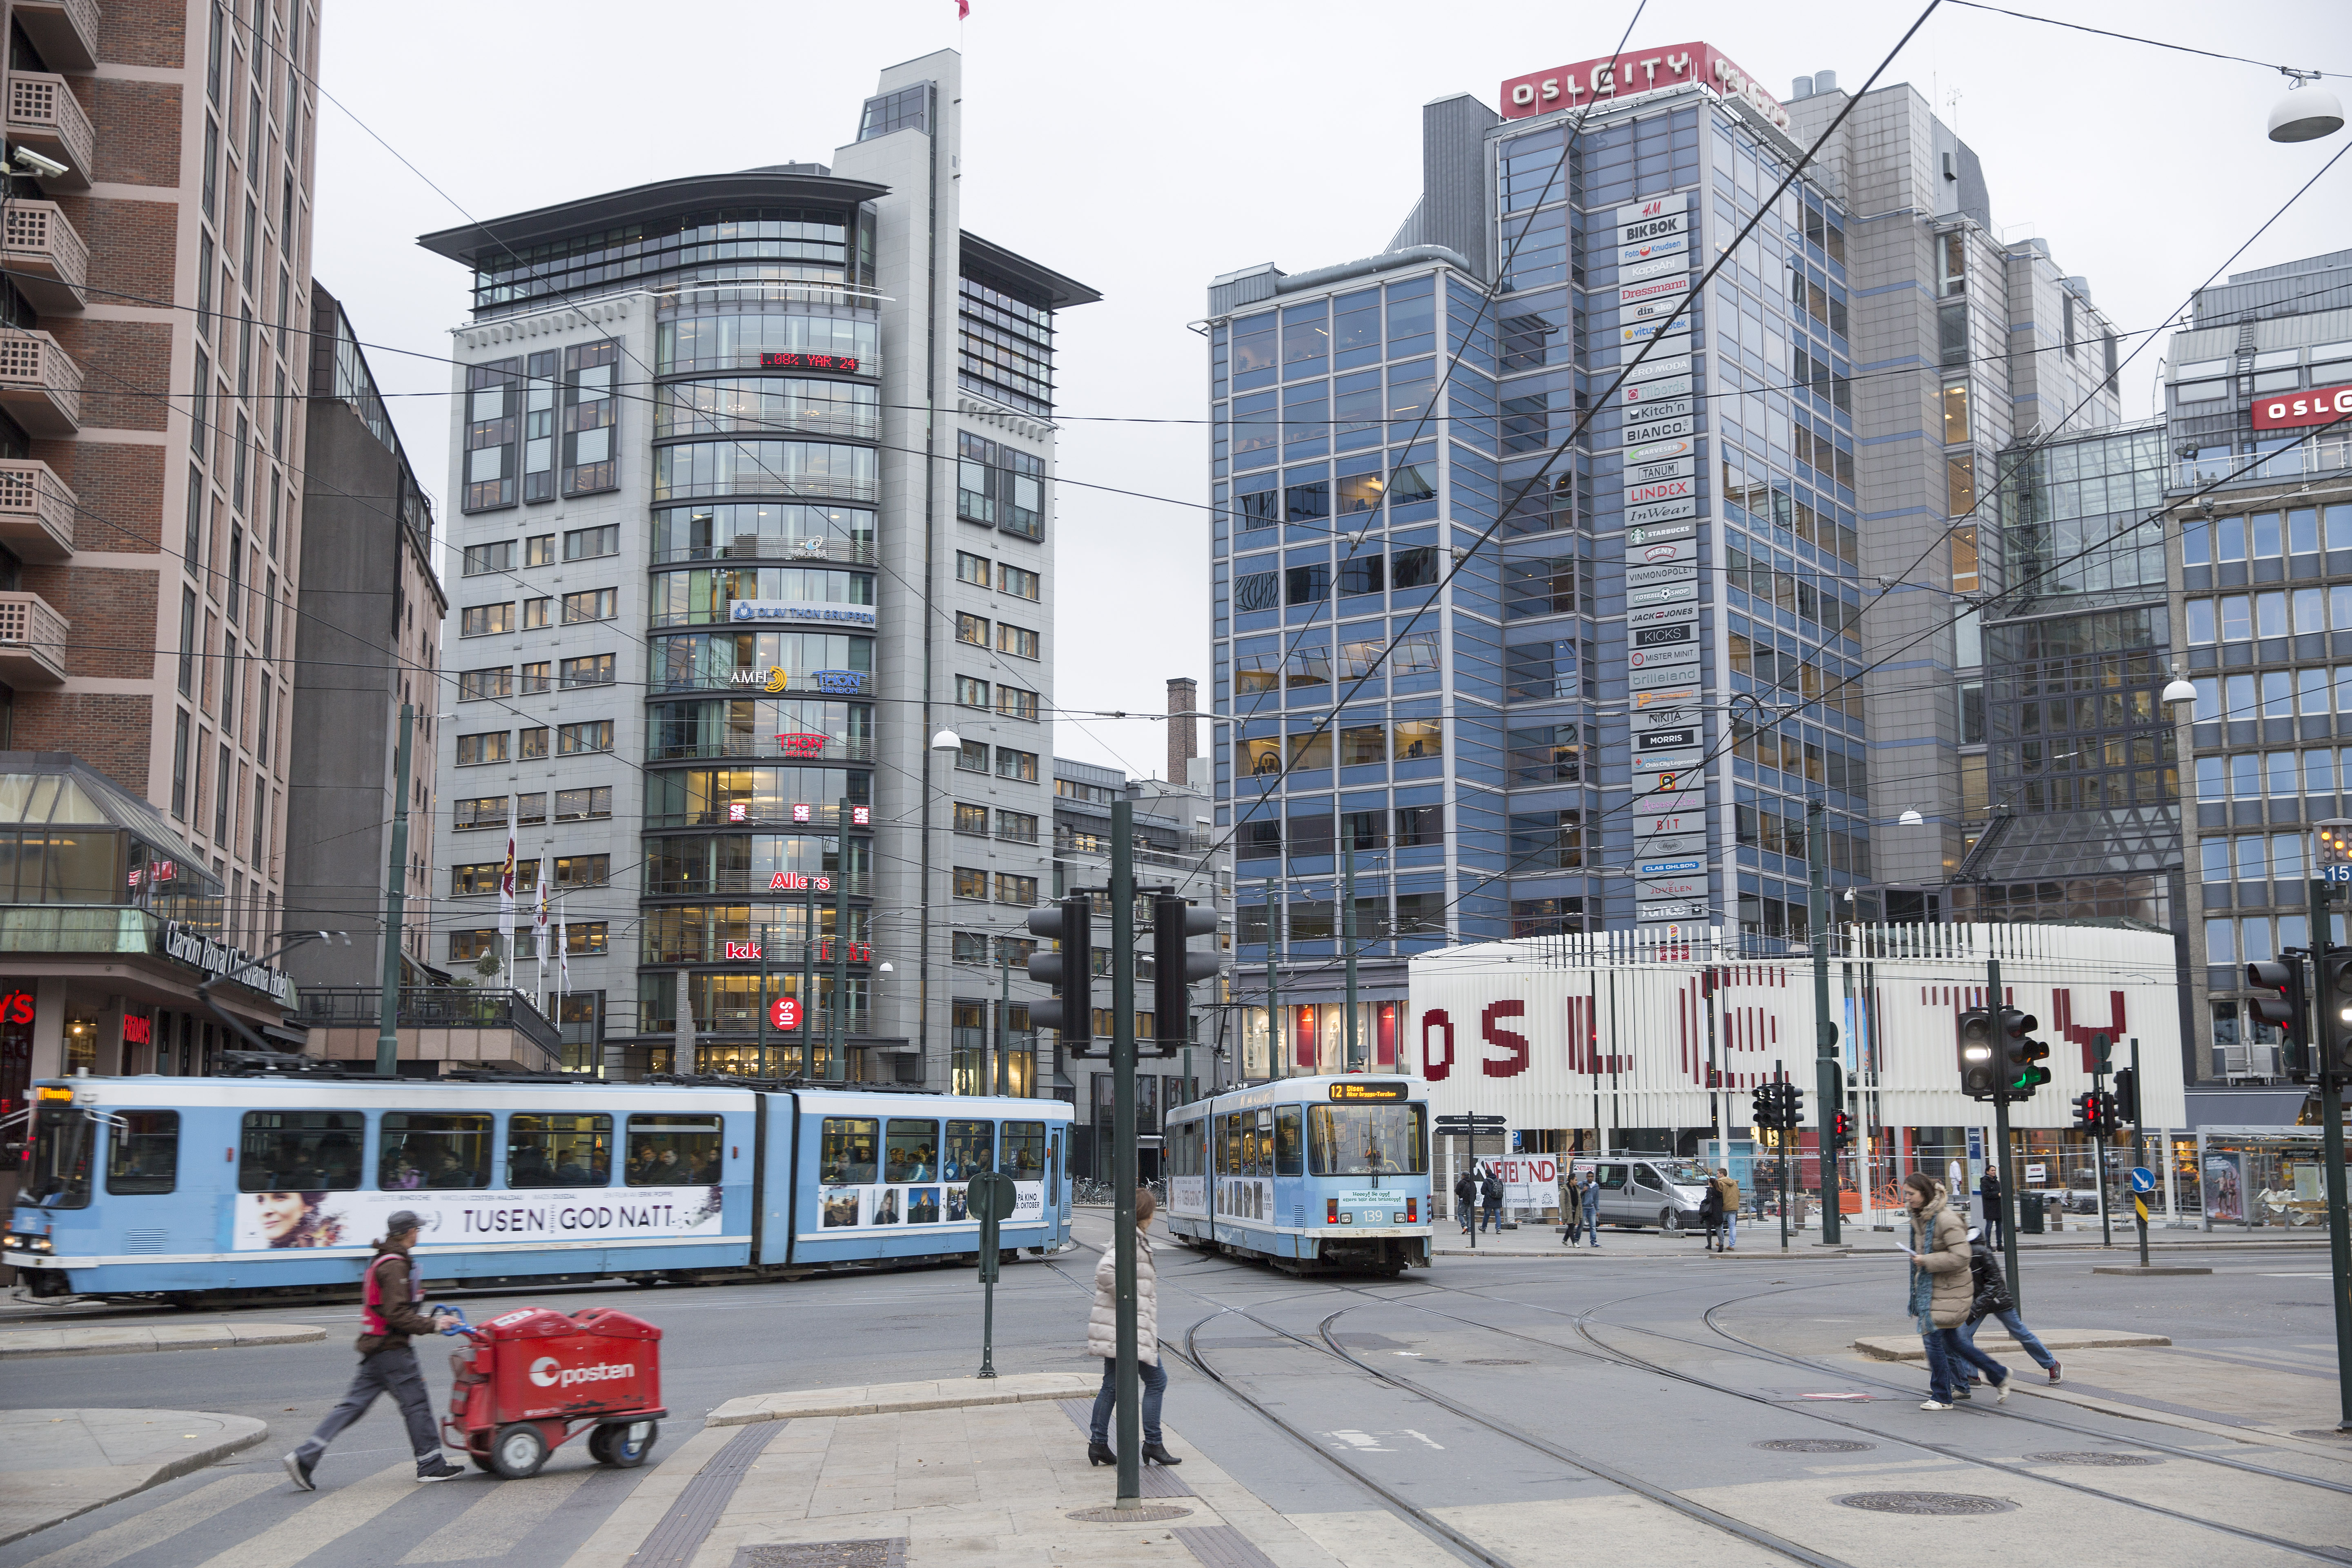 Oslo Plans To Make Its City Center Free From Cars In Four